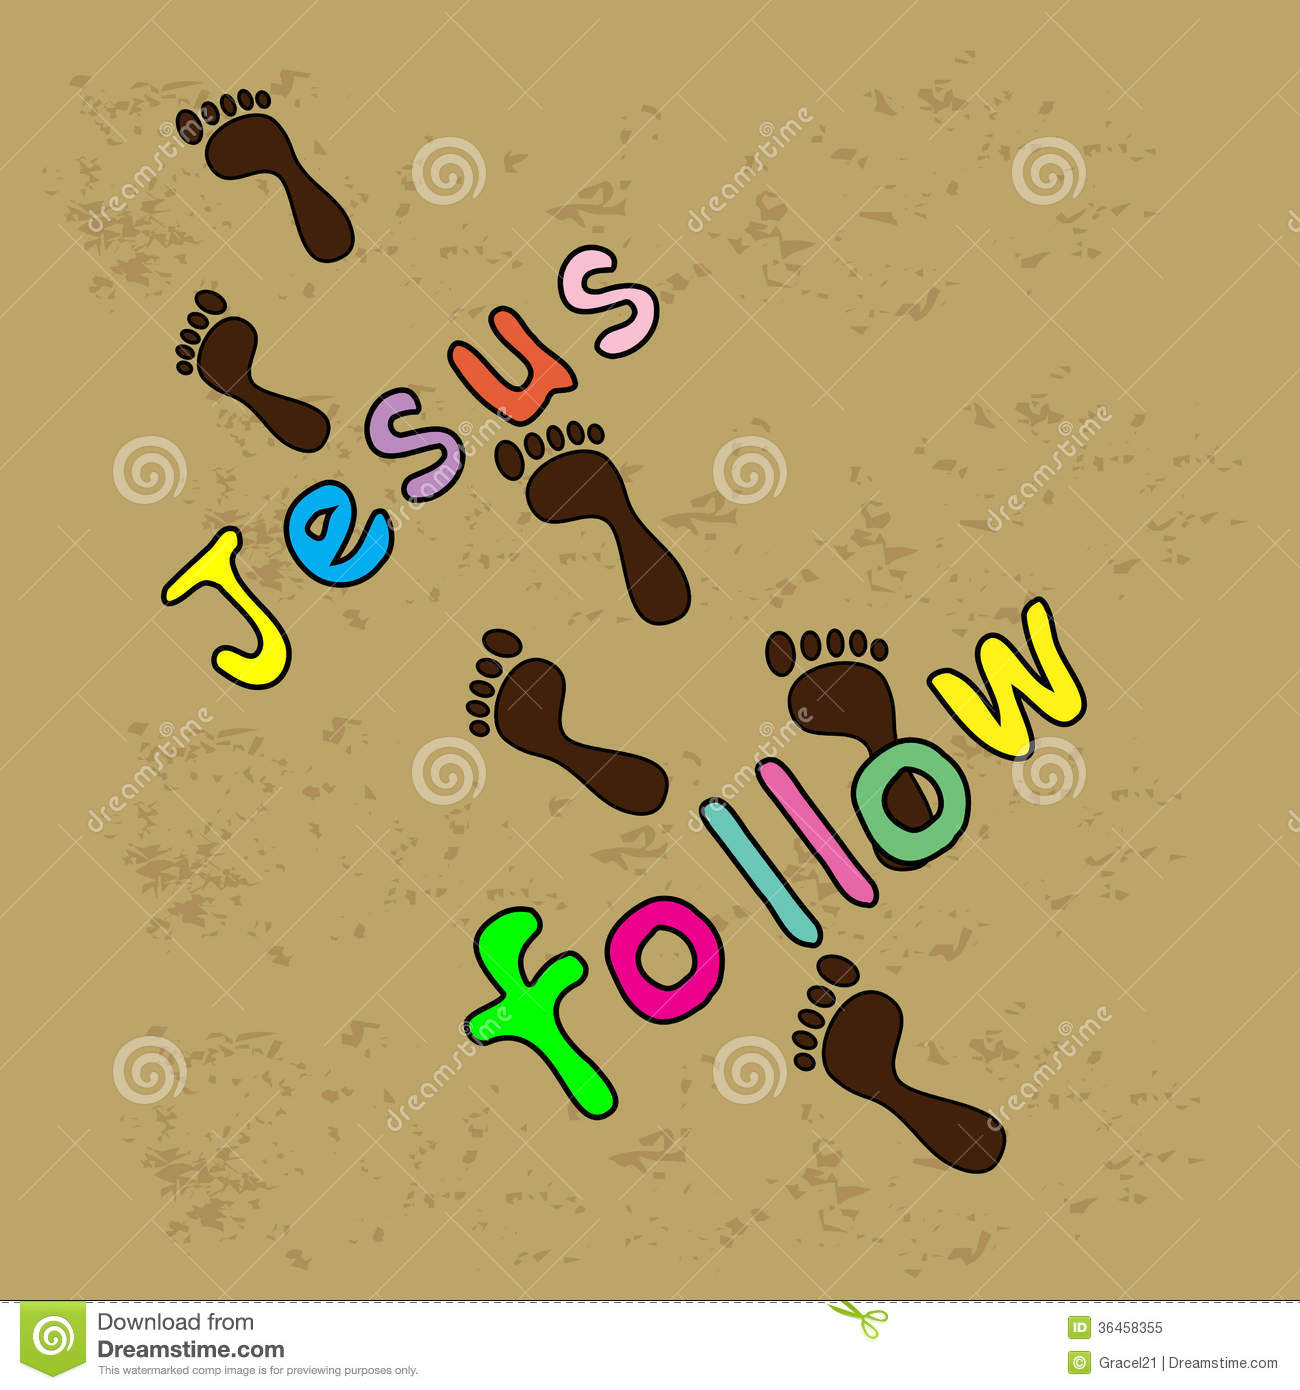 Yak additionally Img Ecrire Le B En Cursive also P in addition Getcoloringpages Org Cutefemalerabbit furthermore Follow Jesus I Have Decided To. on a to z alphabets with pictures